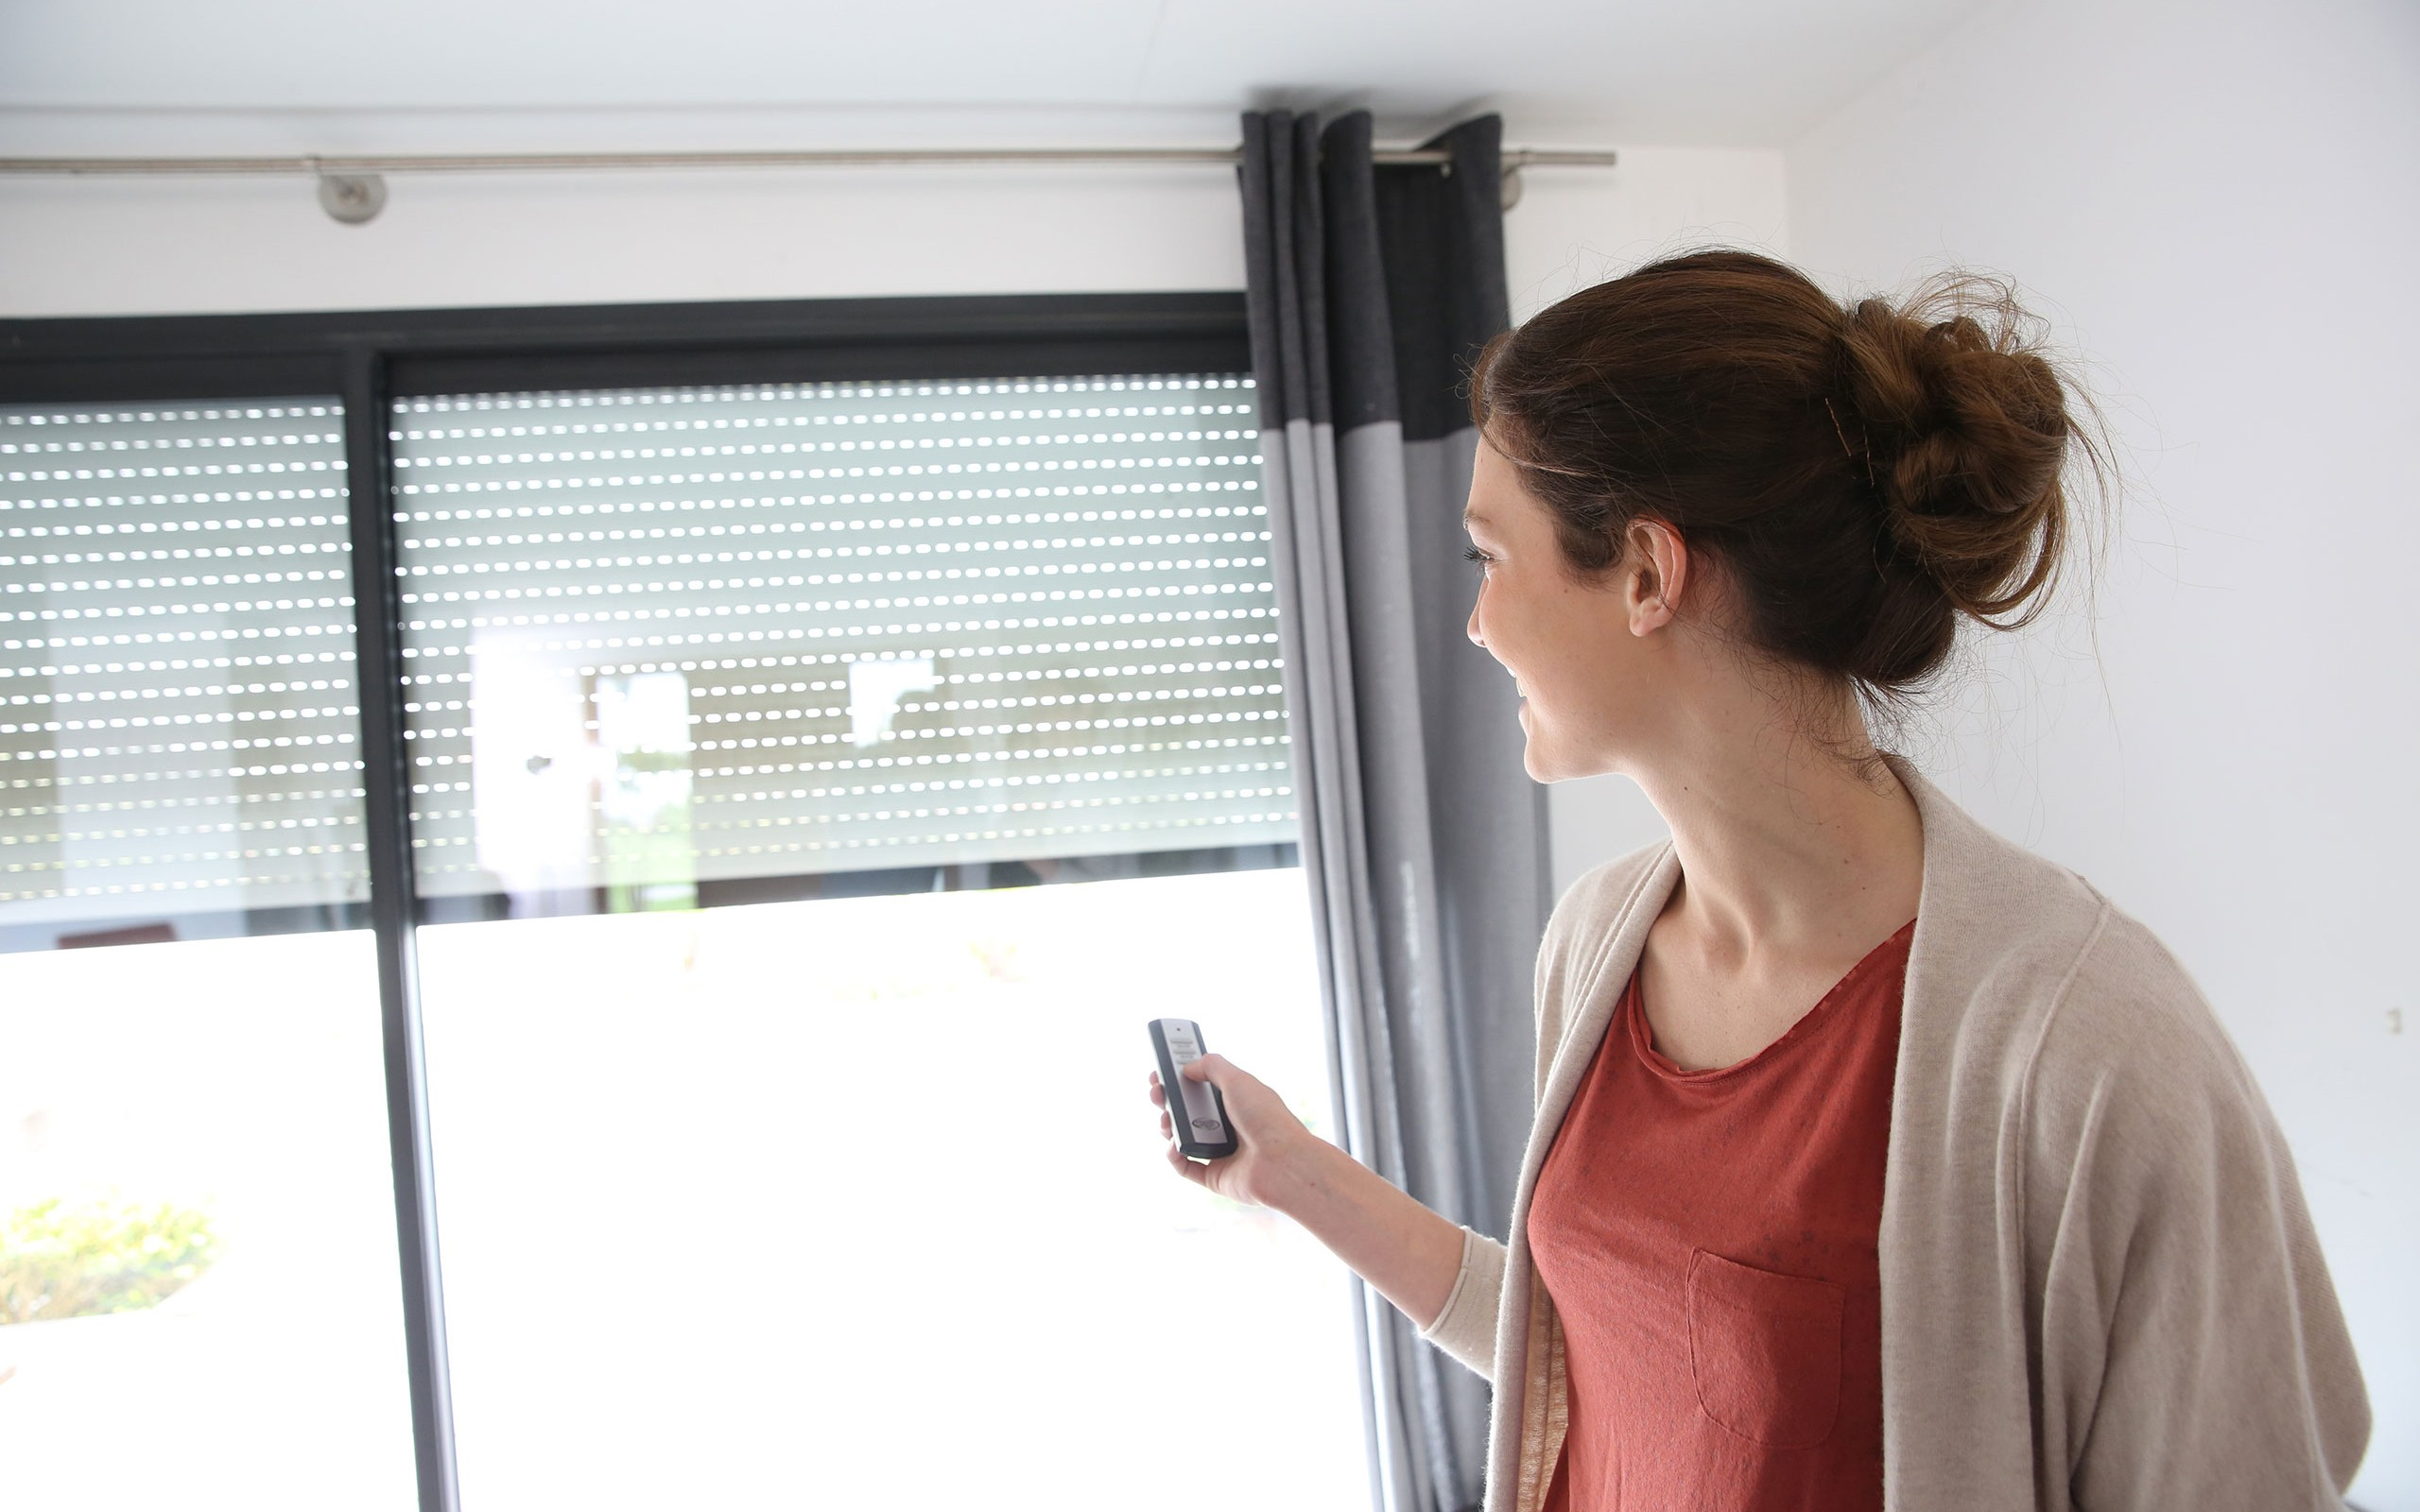 a smiling woman in a red shirt trying a motorized blind at home with remote control